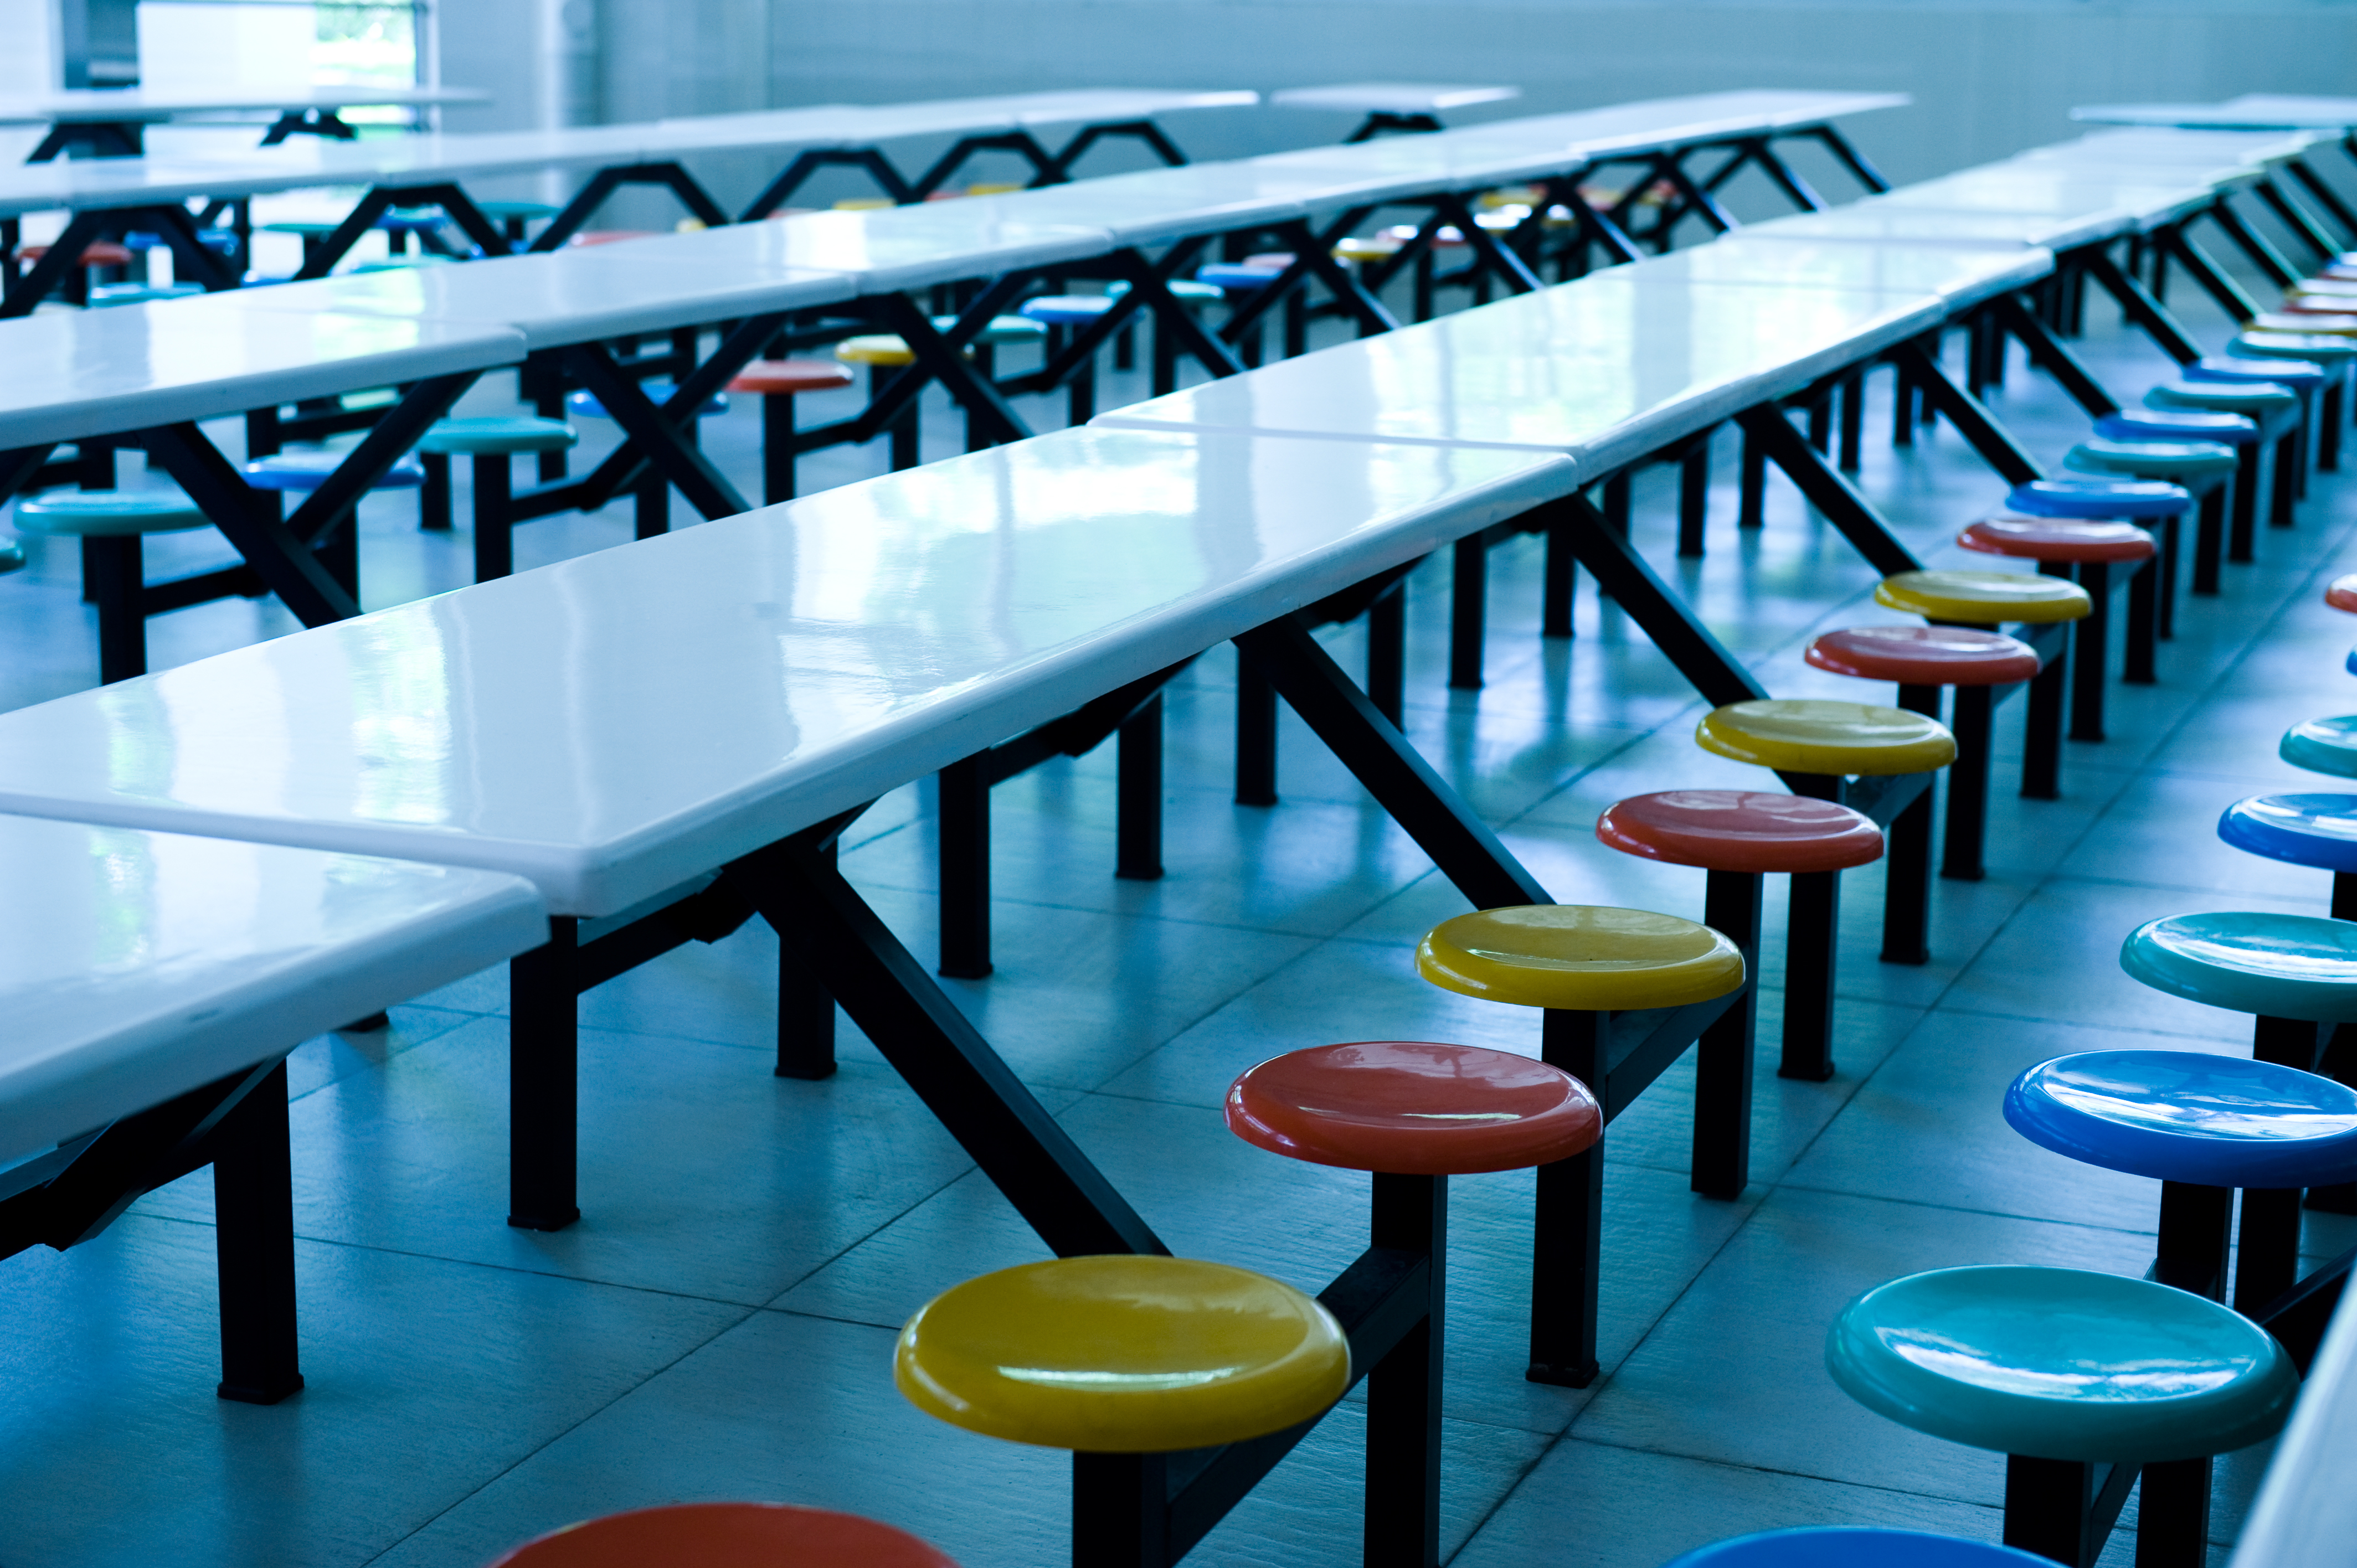 empty seats and tables in a cafeteria